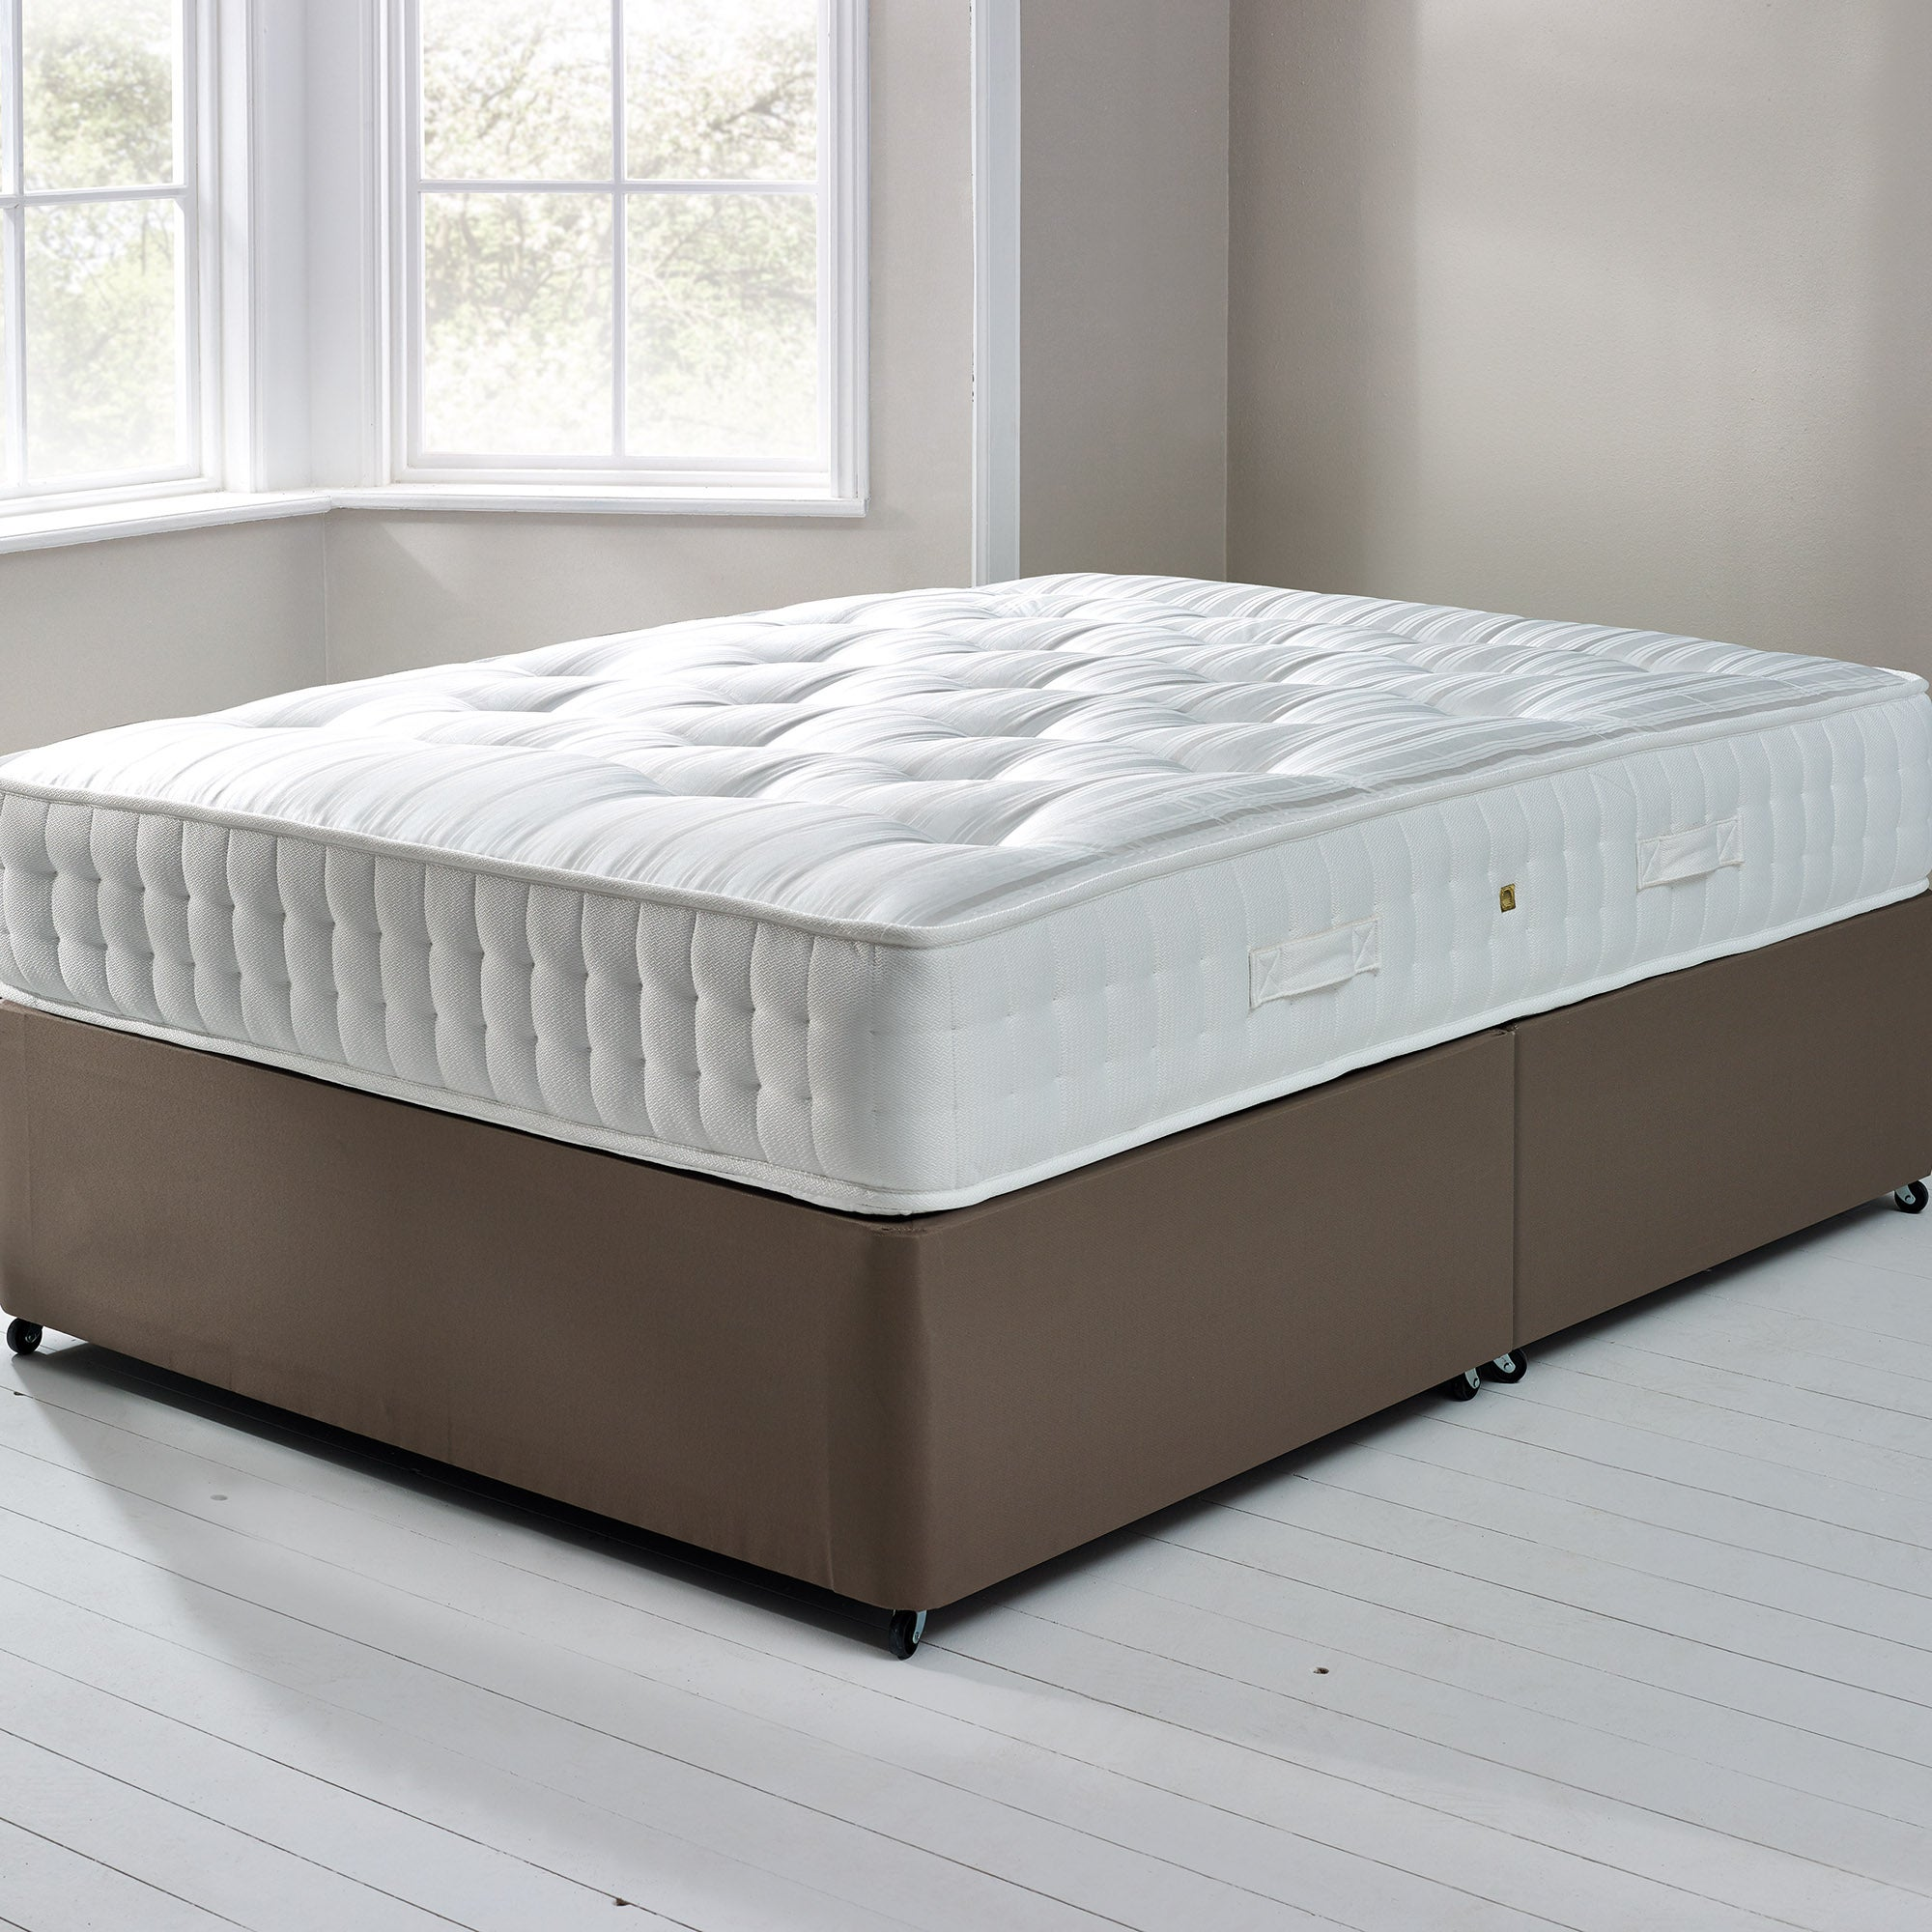 Fogarty Orthopaedic 1000 Mattress and Divan Collection